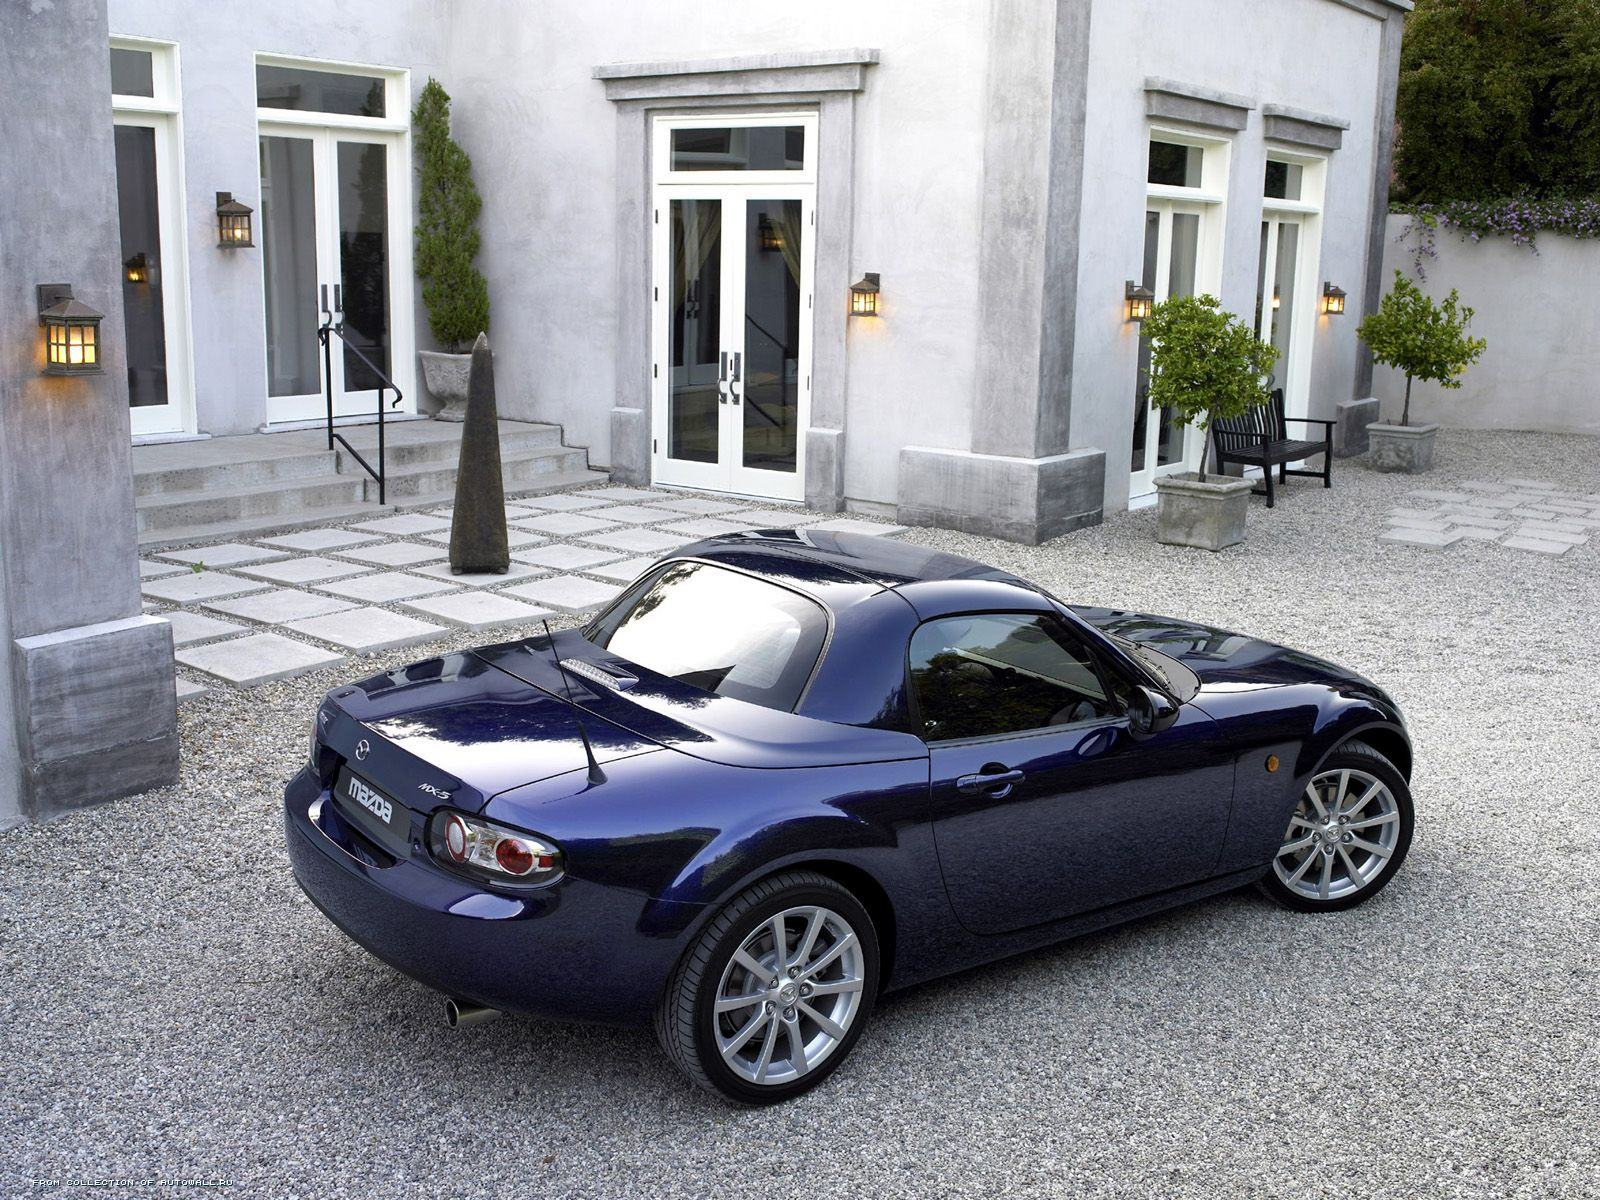 ���� ���������� Mazda MX-5 Roadster Coupe 1600x1200